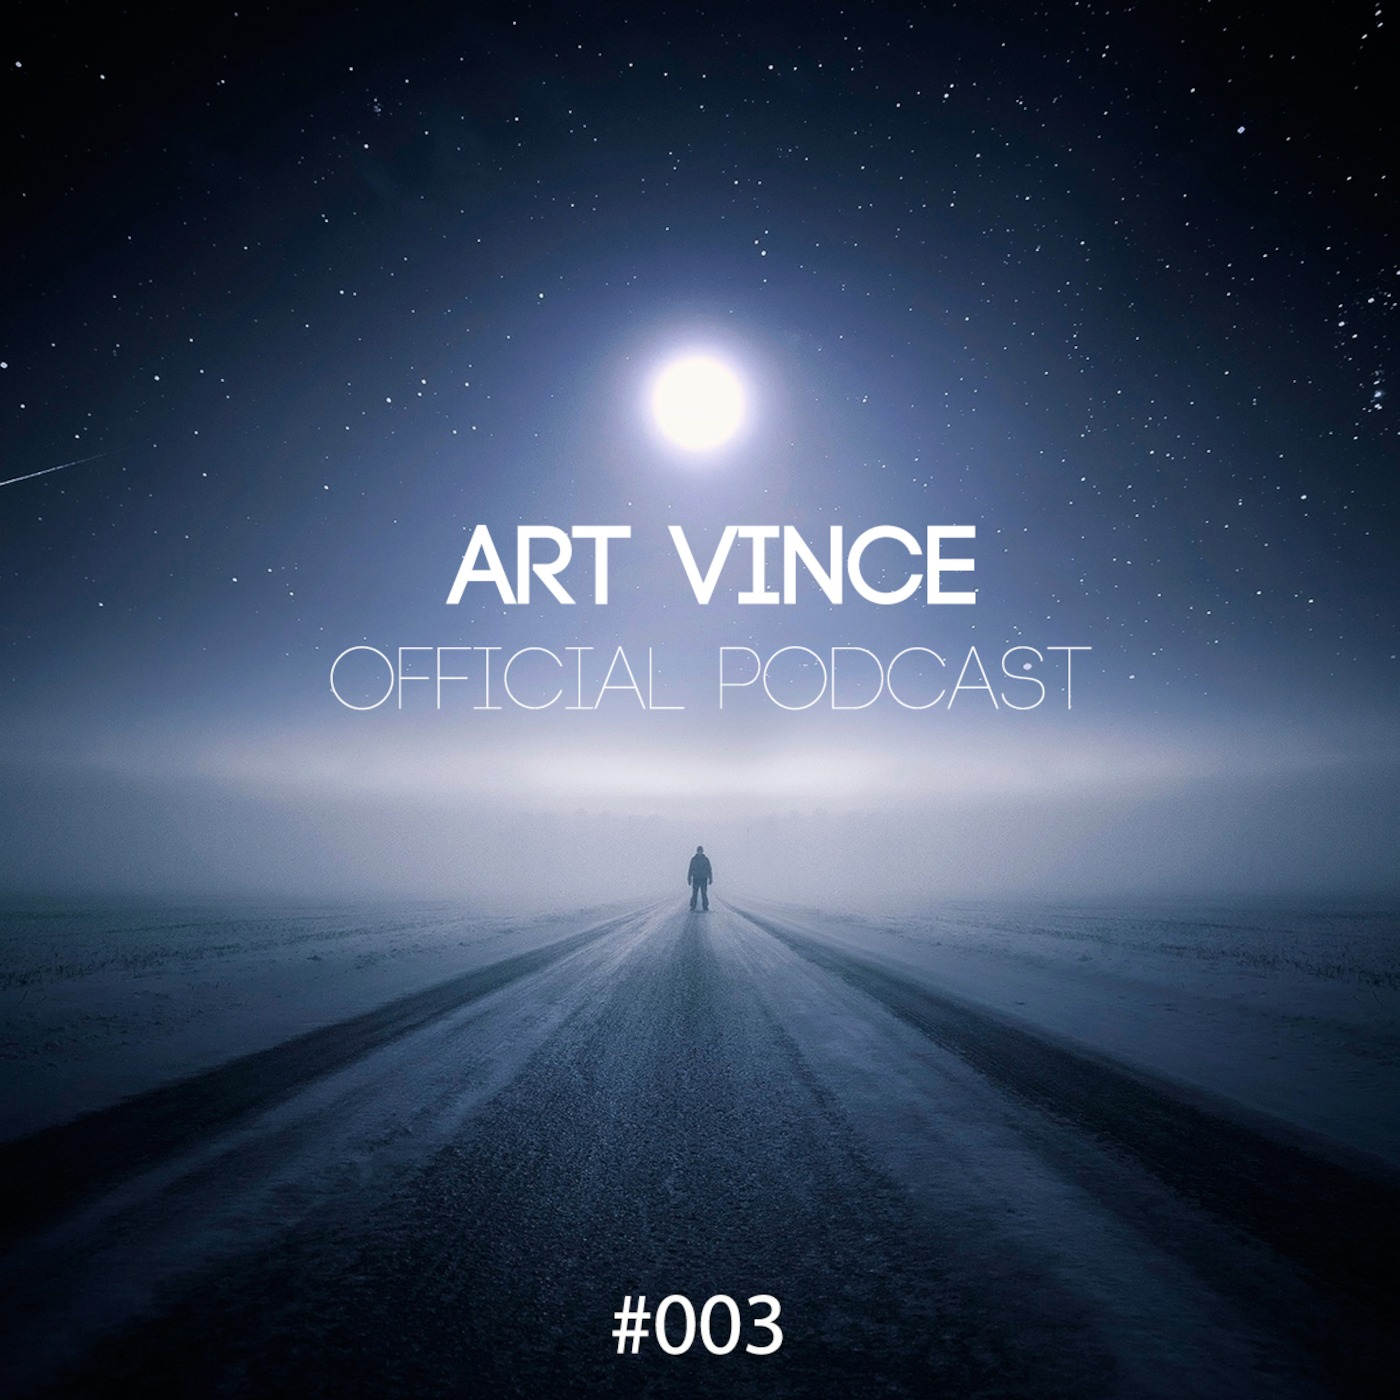 Art Vince's Podcast